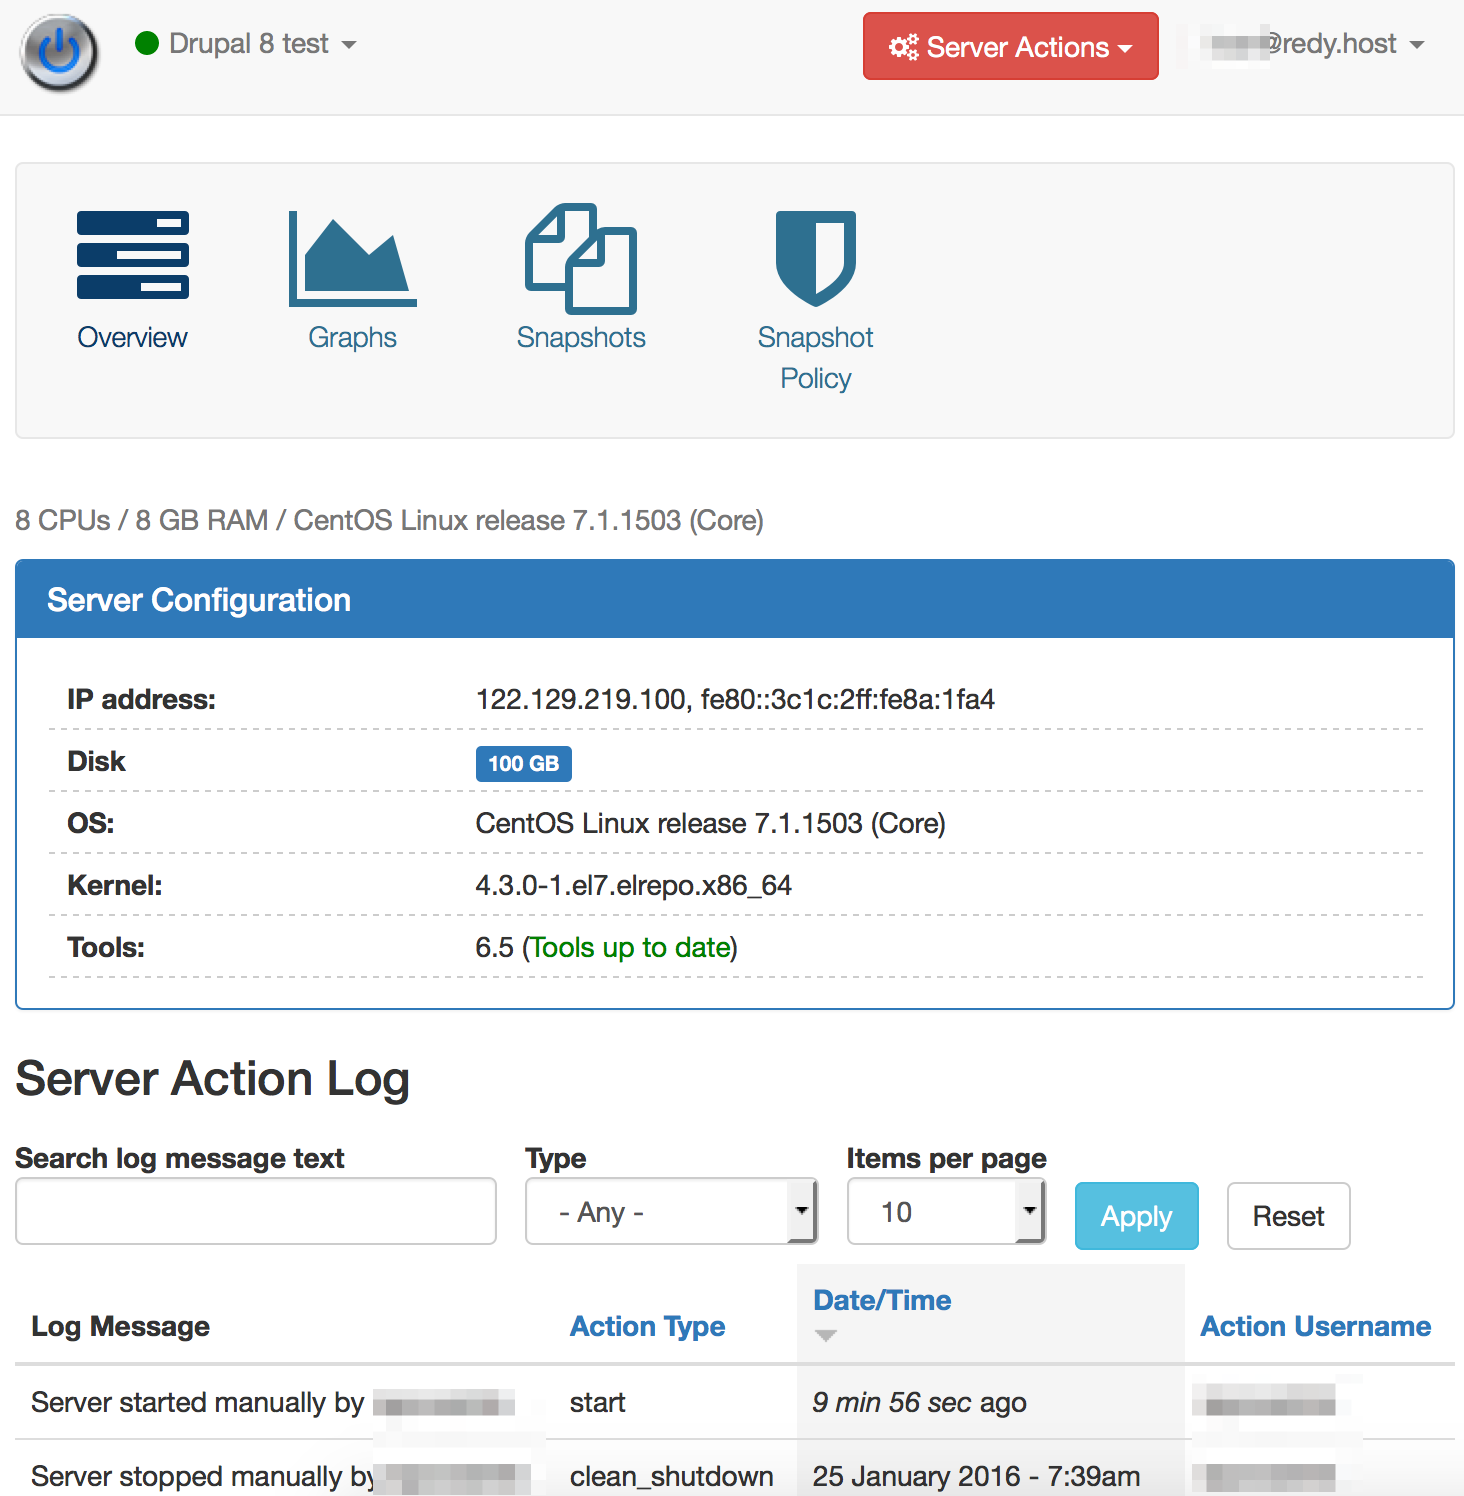 Server View - RedyHost Cloud VPS Management Console